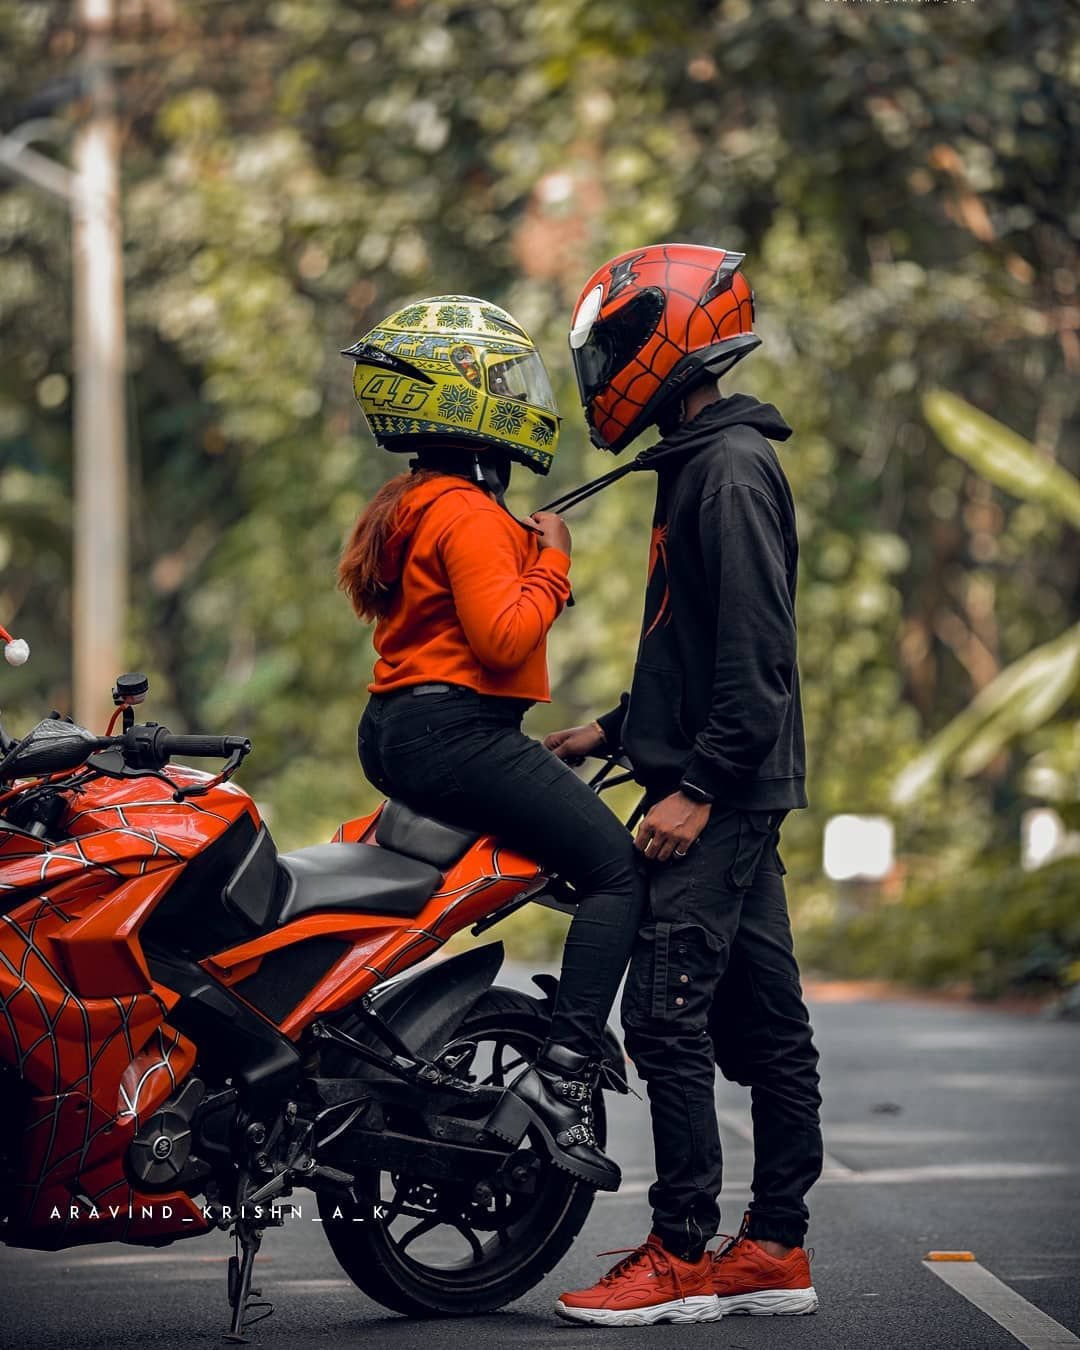 Peter Parker On Instagram No Matter How Far We Are No Matter If Anyone Try To Separate Us No Matter That Our Hat Biker Couple Biker Love Bike Photoshoot Get ktm duke couple wallpaper png